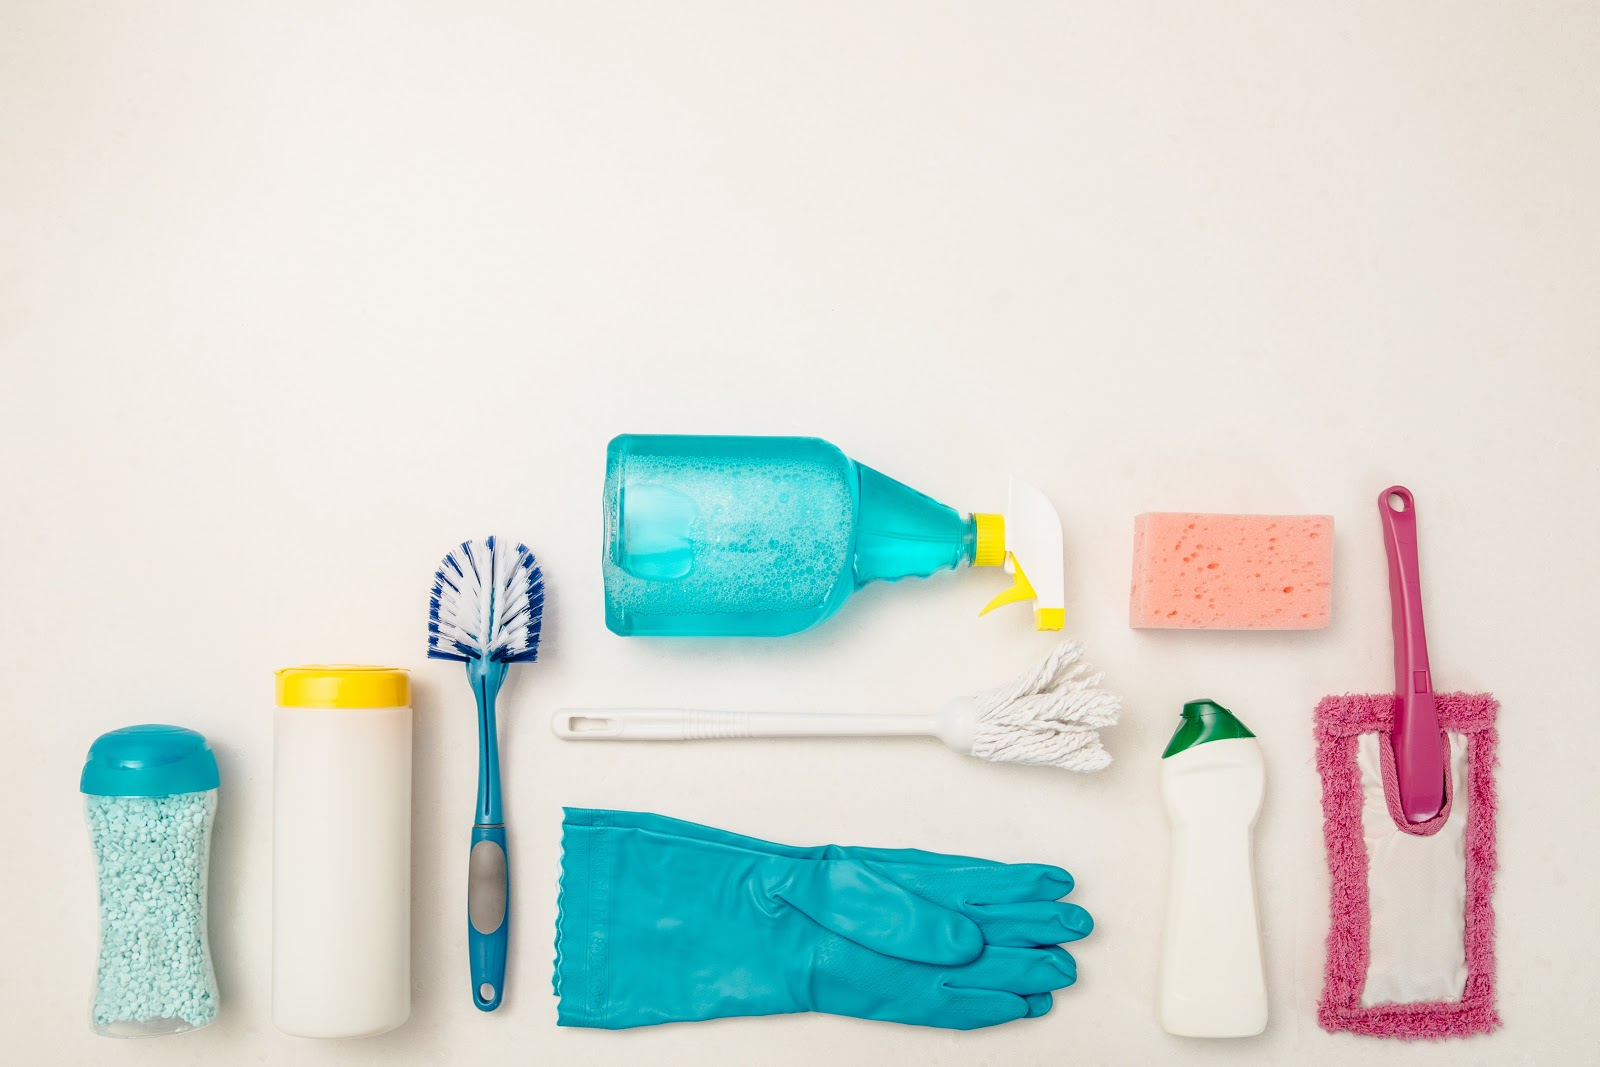 Various cleaning products laid out on a white background.